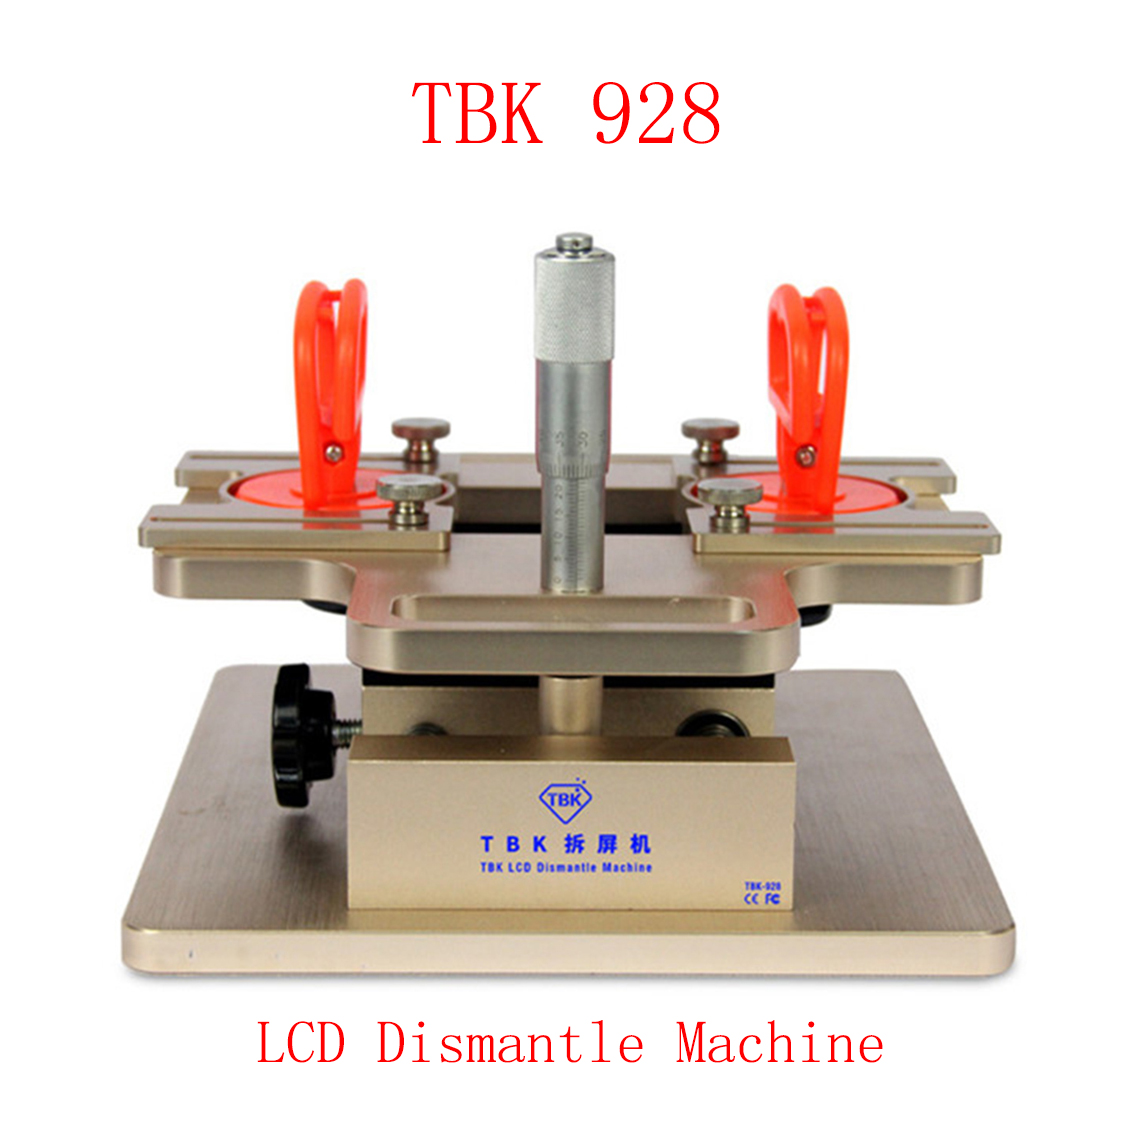 TBK 928 LCD Touch Screen Dismantle Manual A-frame Separator For Mobile Phone Precisely Repair Adjust